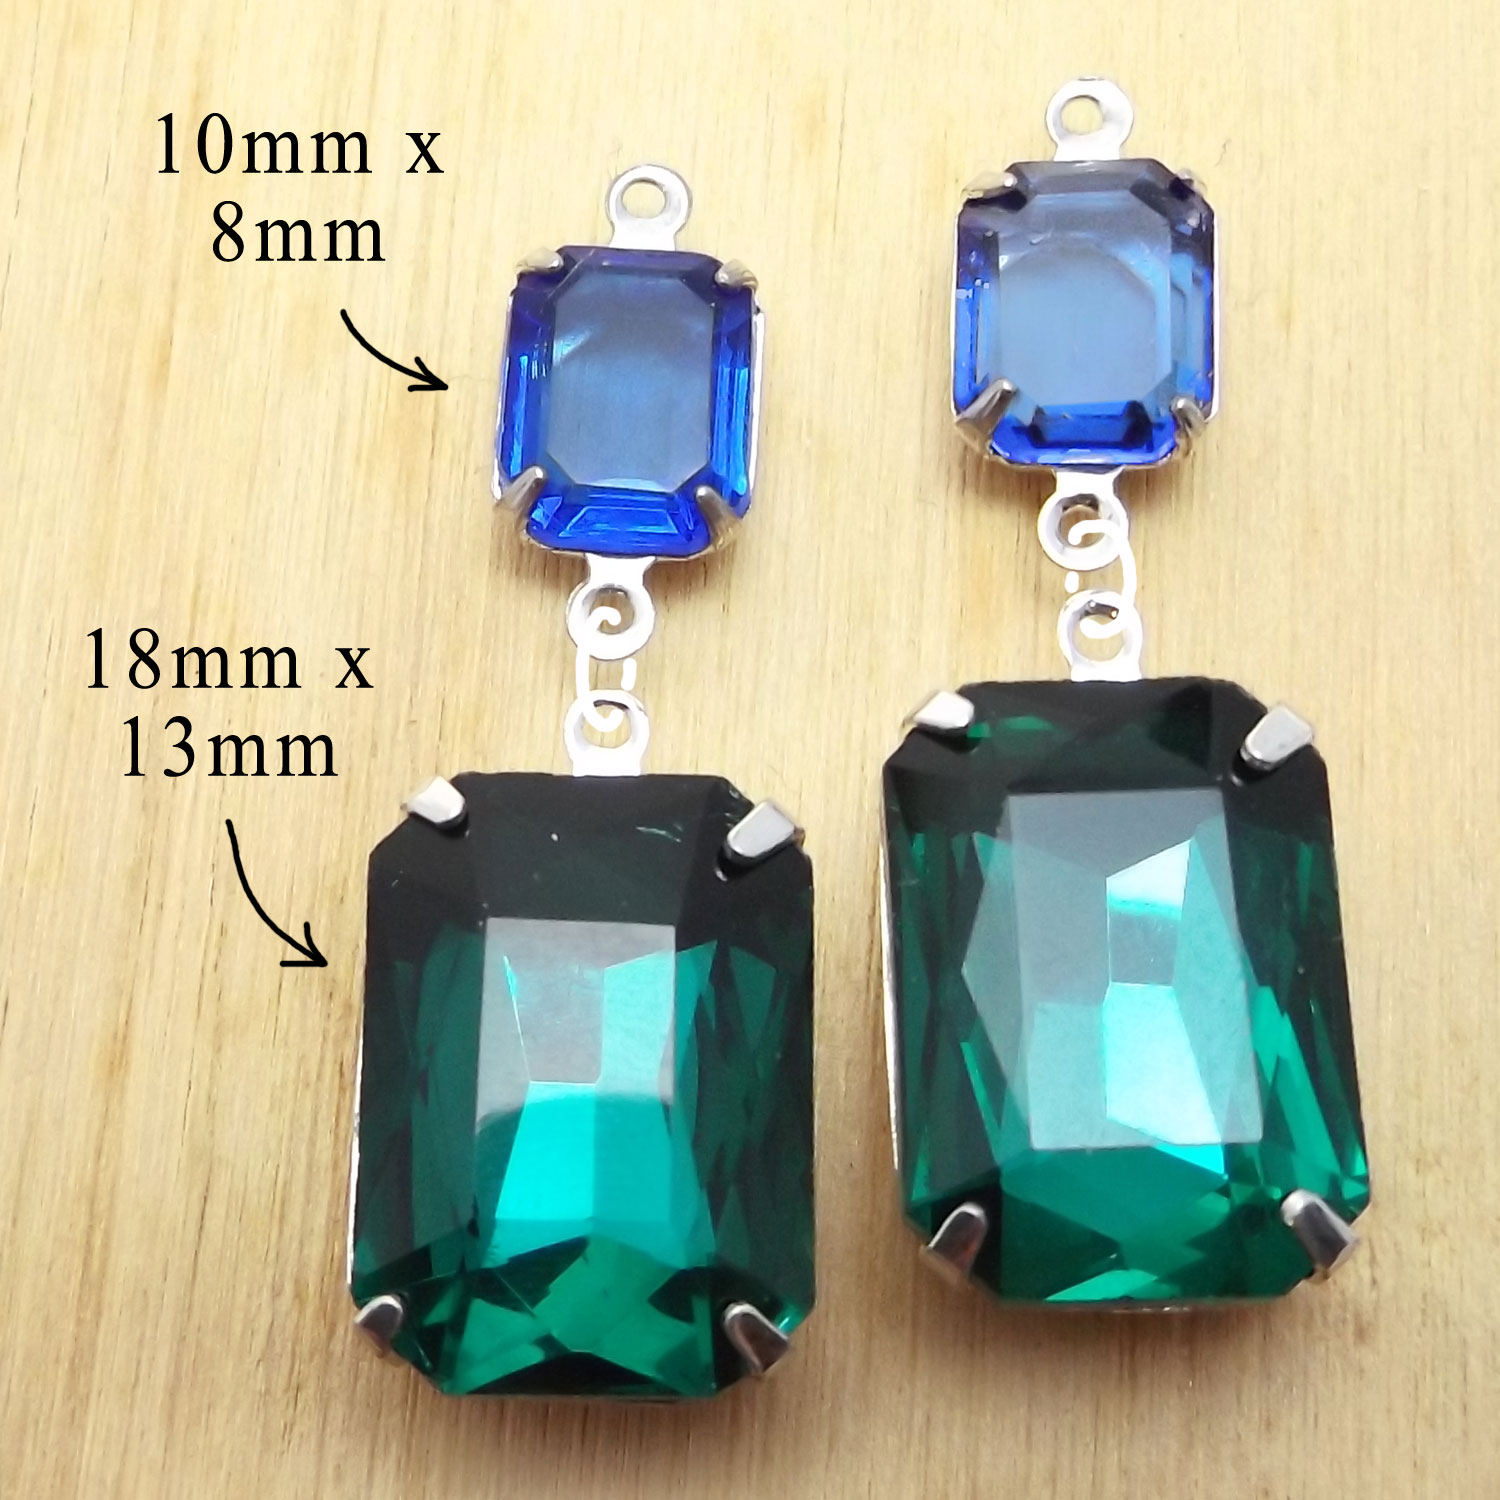 emerald green and sapphire blue rhinestone octagons from my online jewelry supplies shop